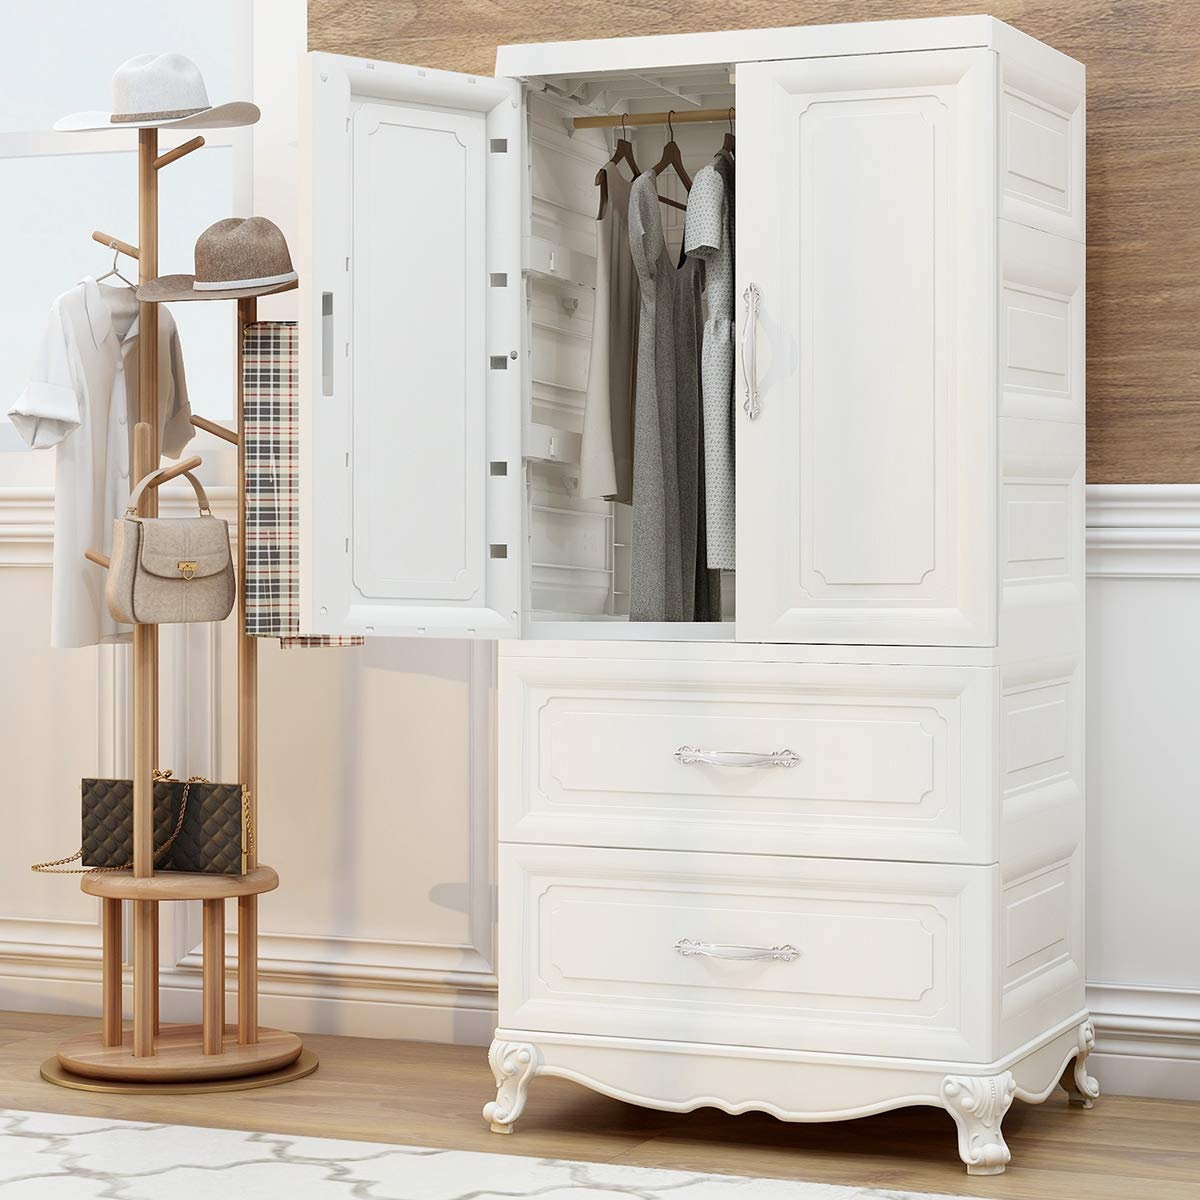 Nafenai Armoire Wardrobe Closet, 2-Door Cabinet Armoire with 2-Drawers, 2-Shelves and Clothing Hanging Rod, White